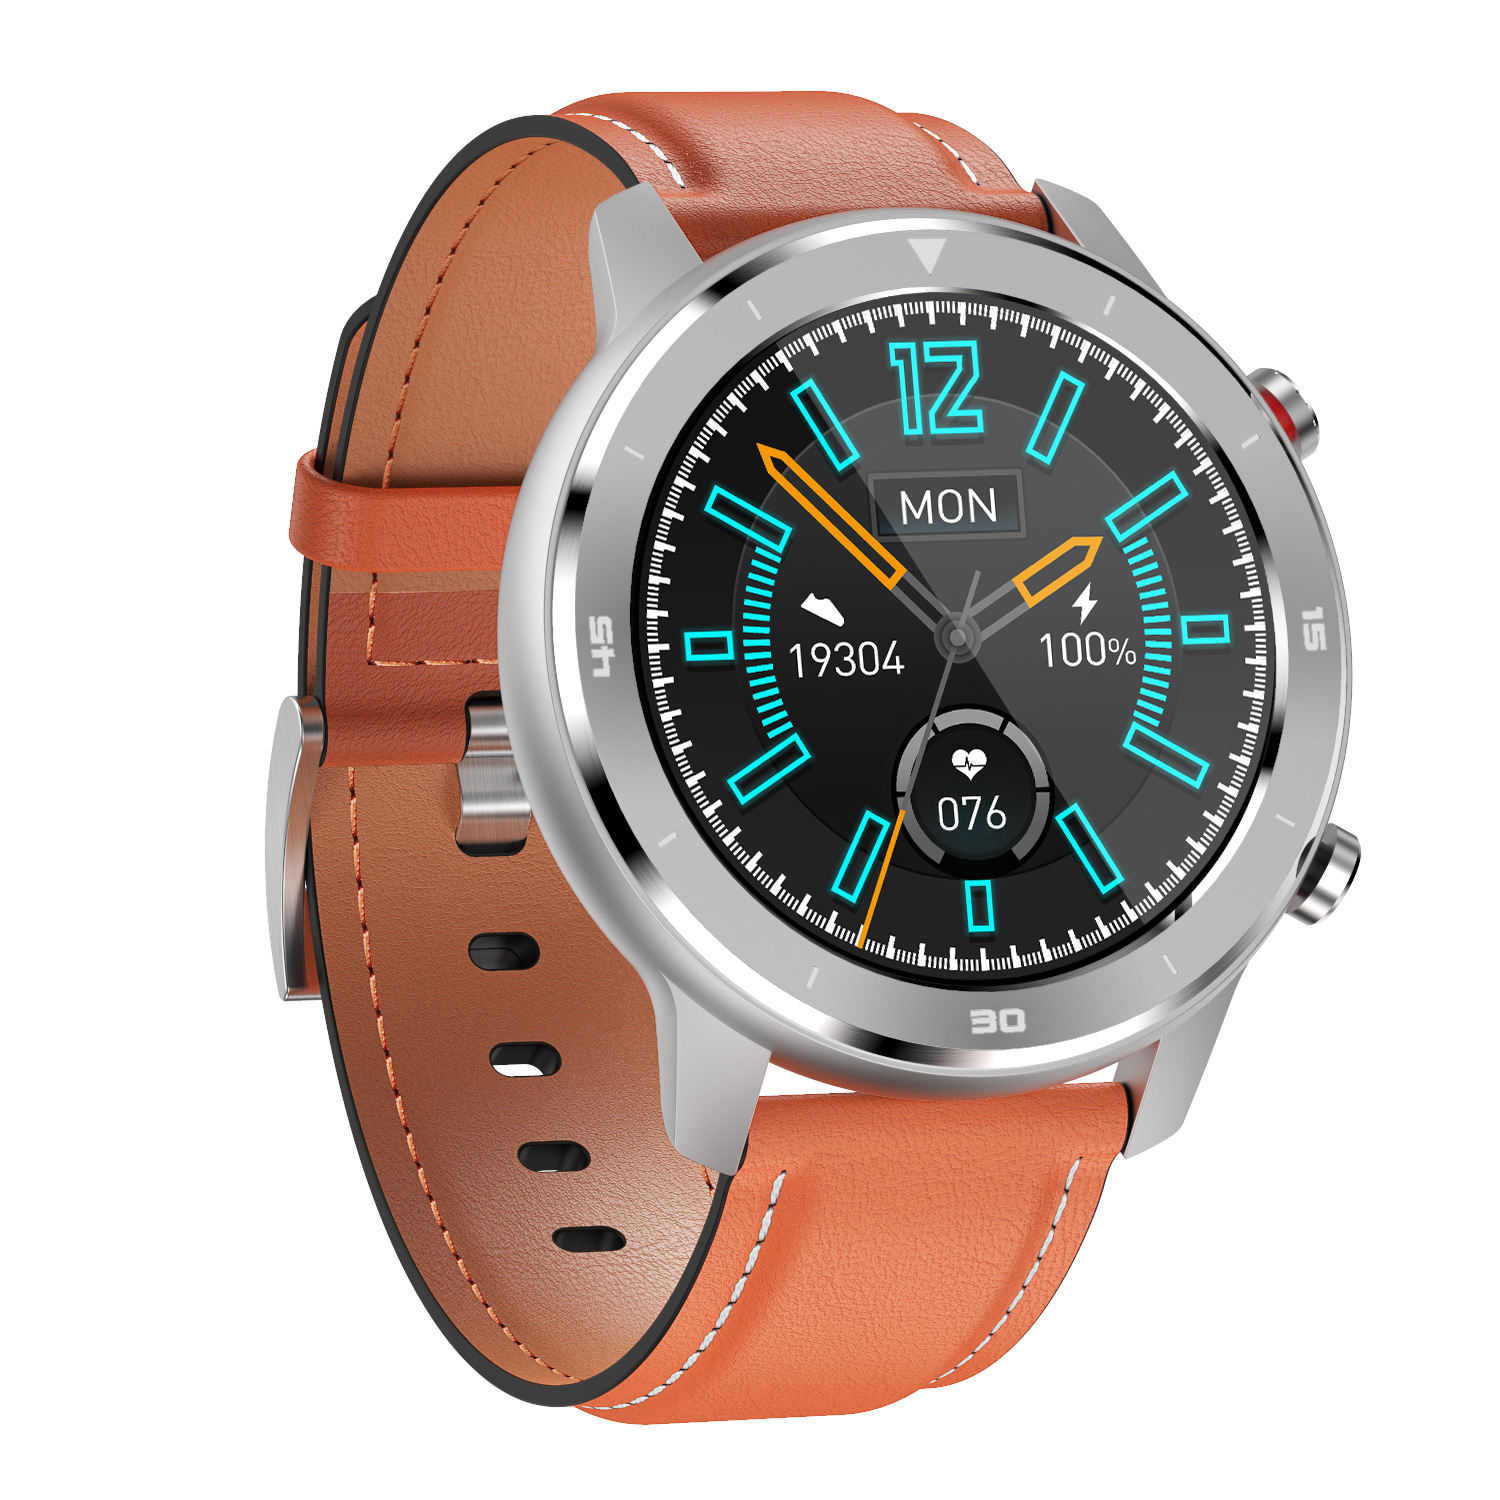 2020 IP67 Waterproof Smartwatch Full Touch Wearfit Heart Rate Monitor Round Fitness Sport Smart Watch DT78 with Multiple Strap